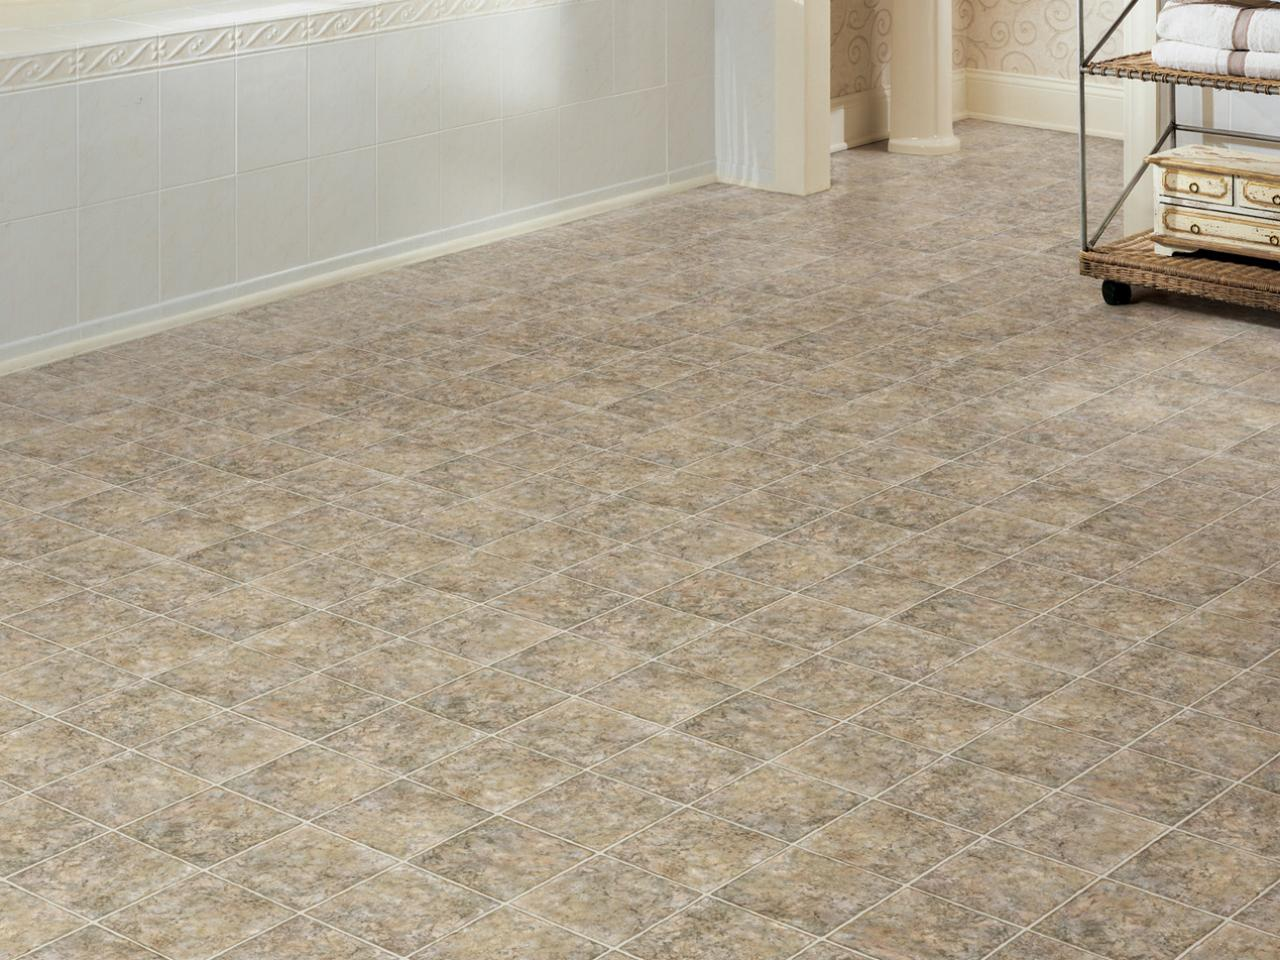 Vinyl Low Cost And Lovely HGTV - Bathroom floor materials